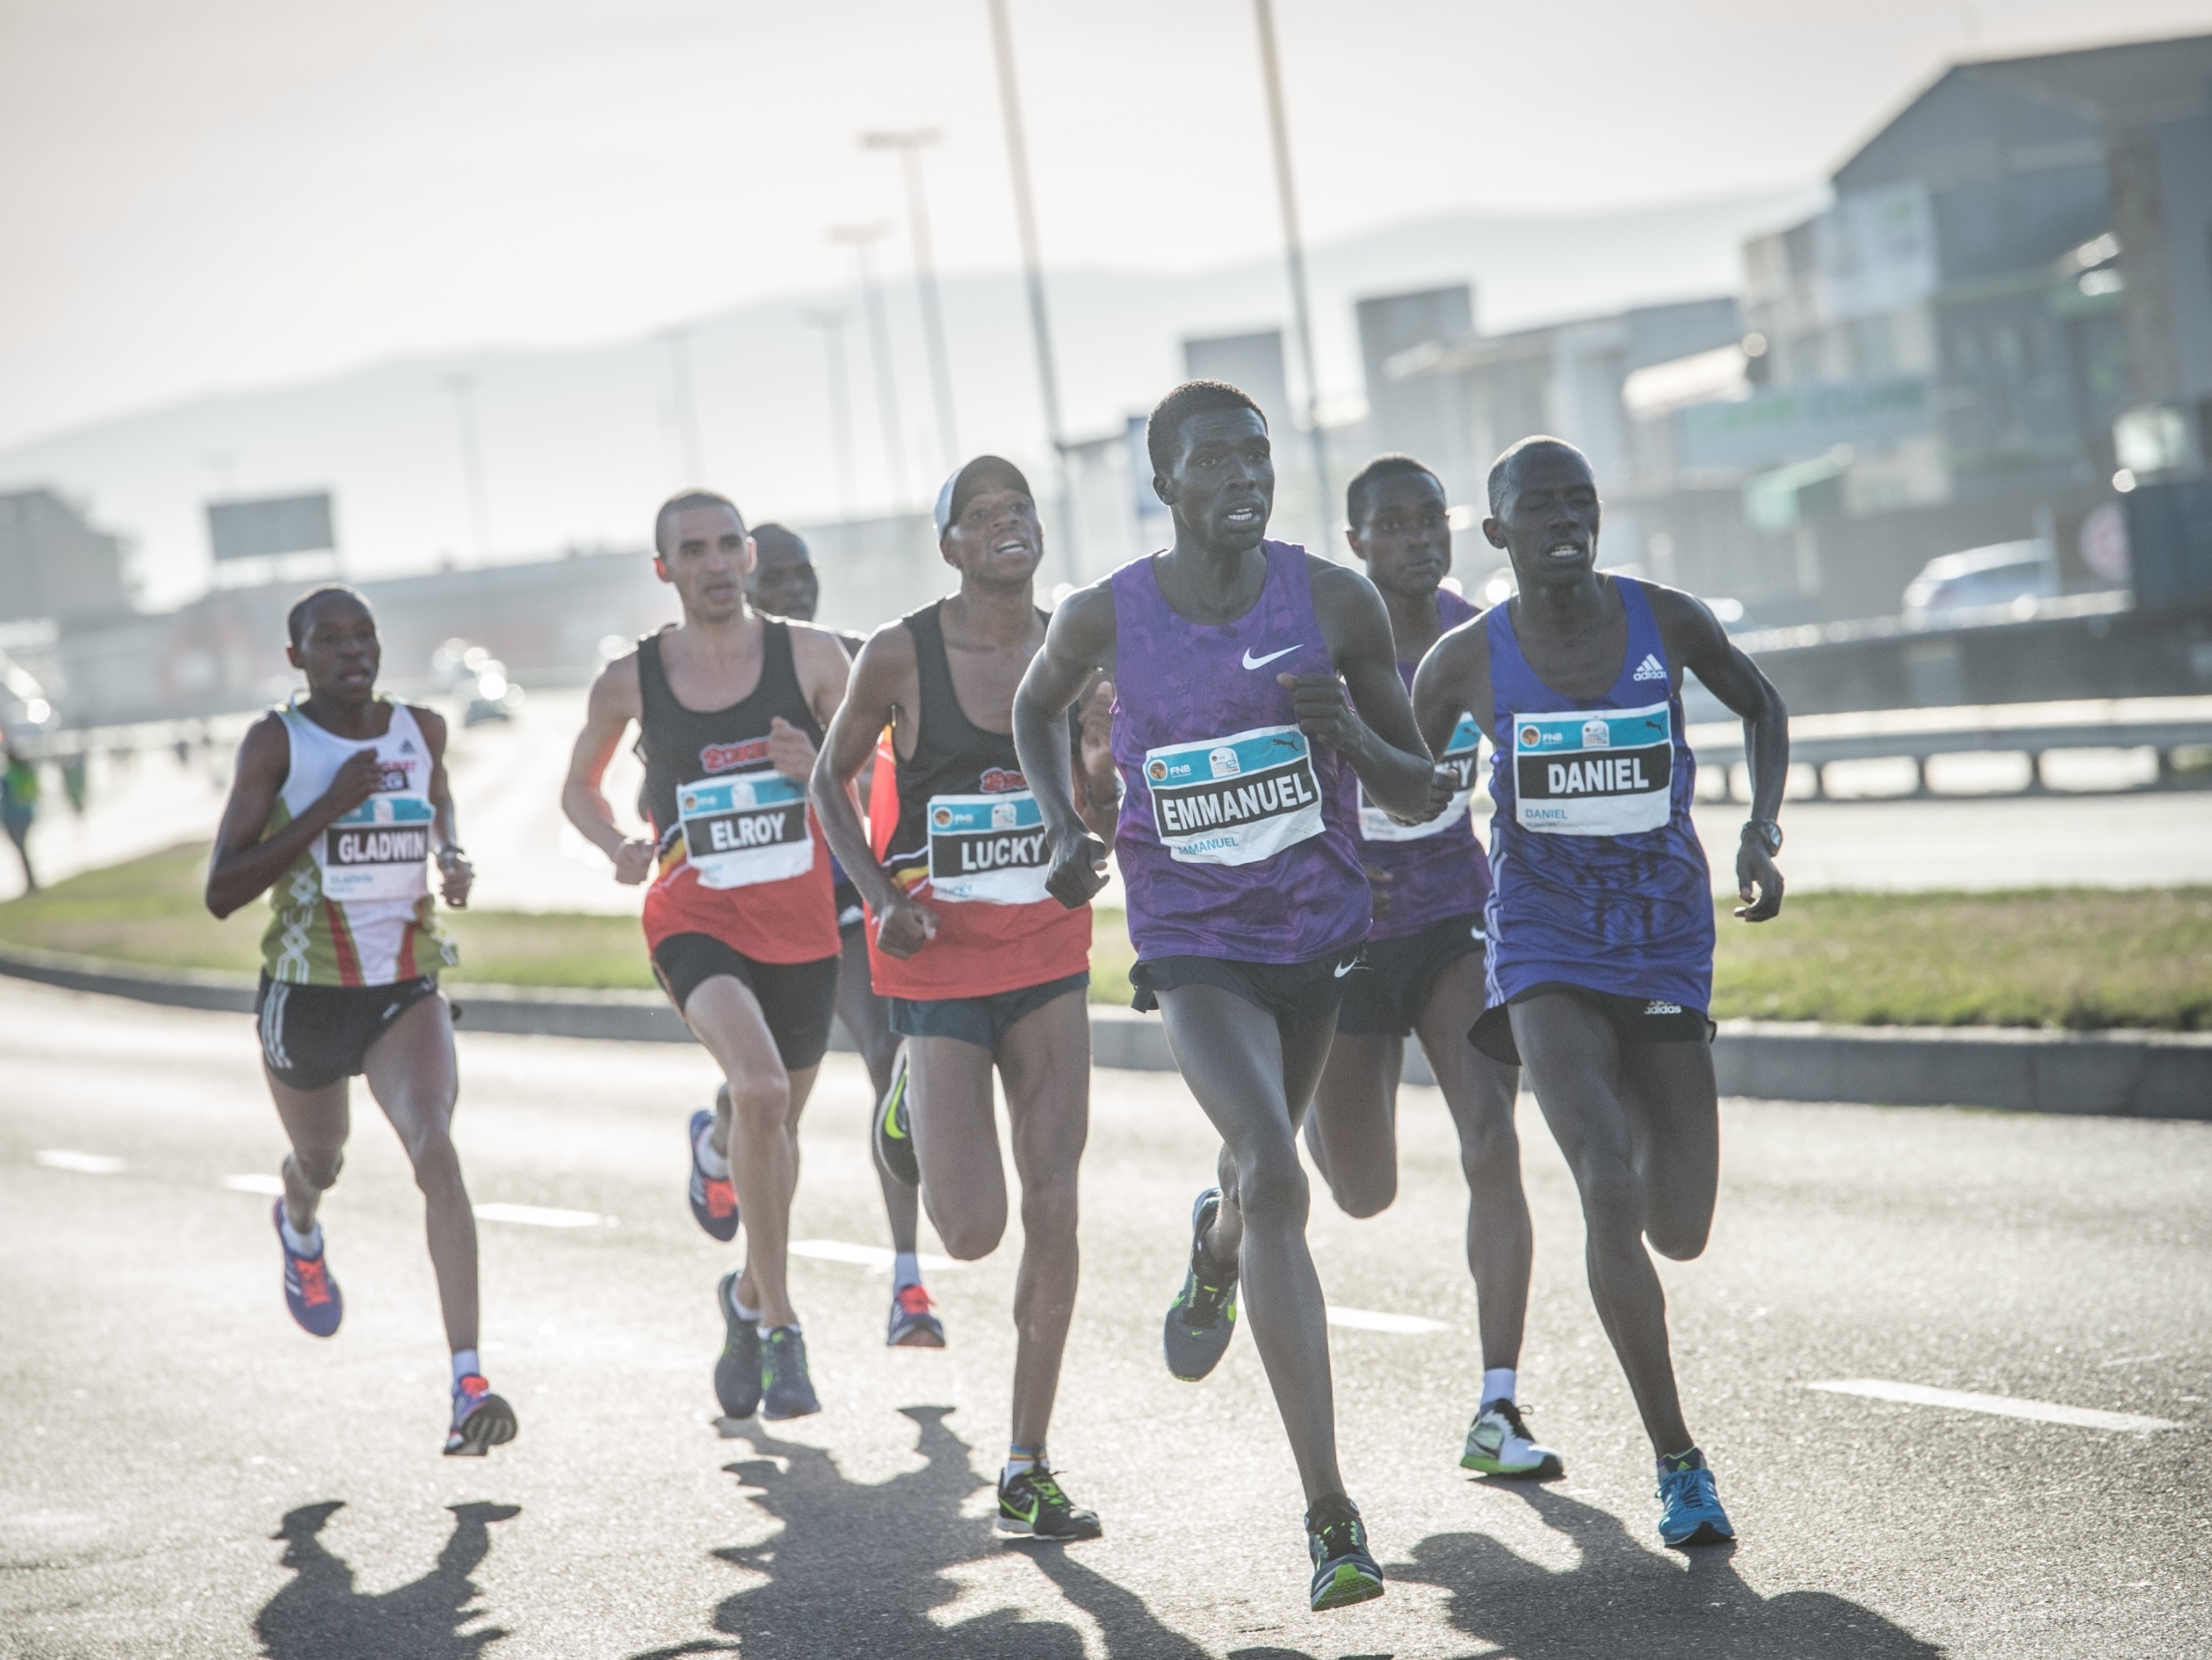 Not only will Stephen Mokoka and Elroy Gelant take the challenge to the defending Champion Emmanuel Bett, runner up Daniel Salel and third placed Timothy Toroitich, but they will have ample support from the likes of Gladwin Mzazi, Joel Mmone and Mariano Eesou at this year's FNB Cape Town 12 ONERUN.  Seen here:  The elite men's field in action during the inaugural event in 2015.  In the mix was Gladwin Mzazi, Elroy Gelant, Emmanuel Bett, Daniel Salel and Timothy Toroitich.   Photo Credit:  Tobias Ginsberg